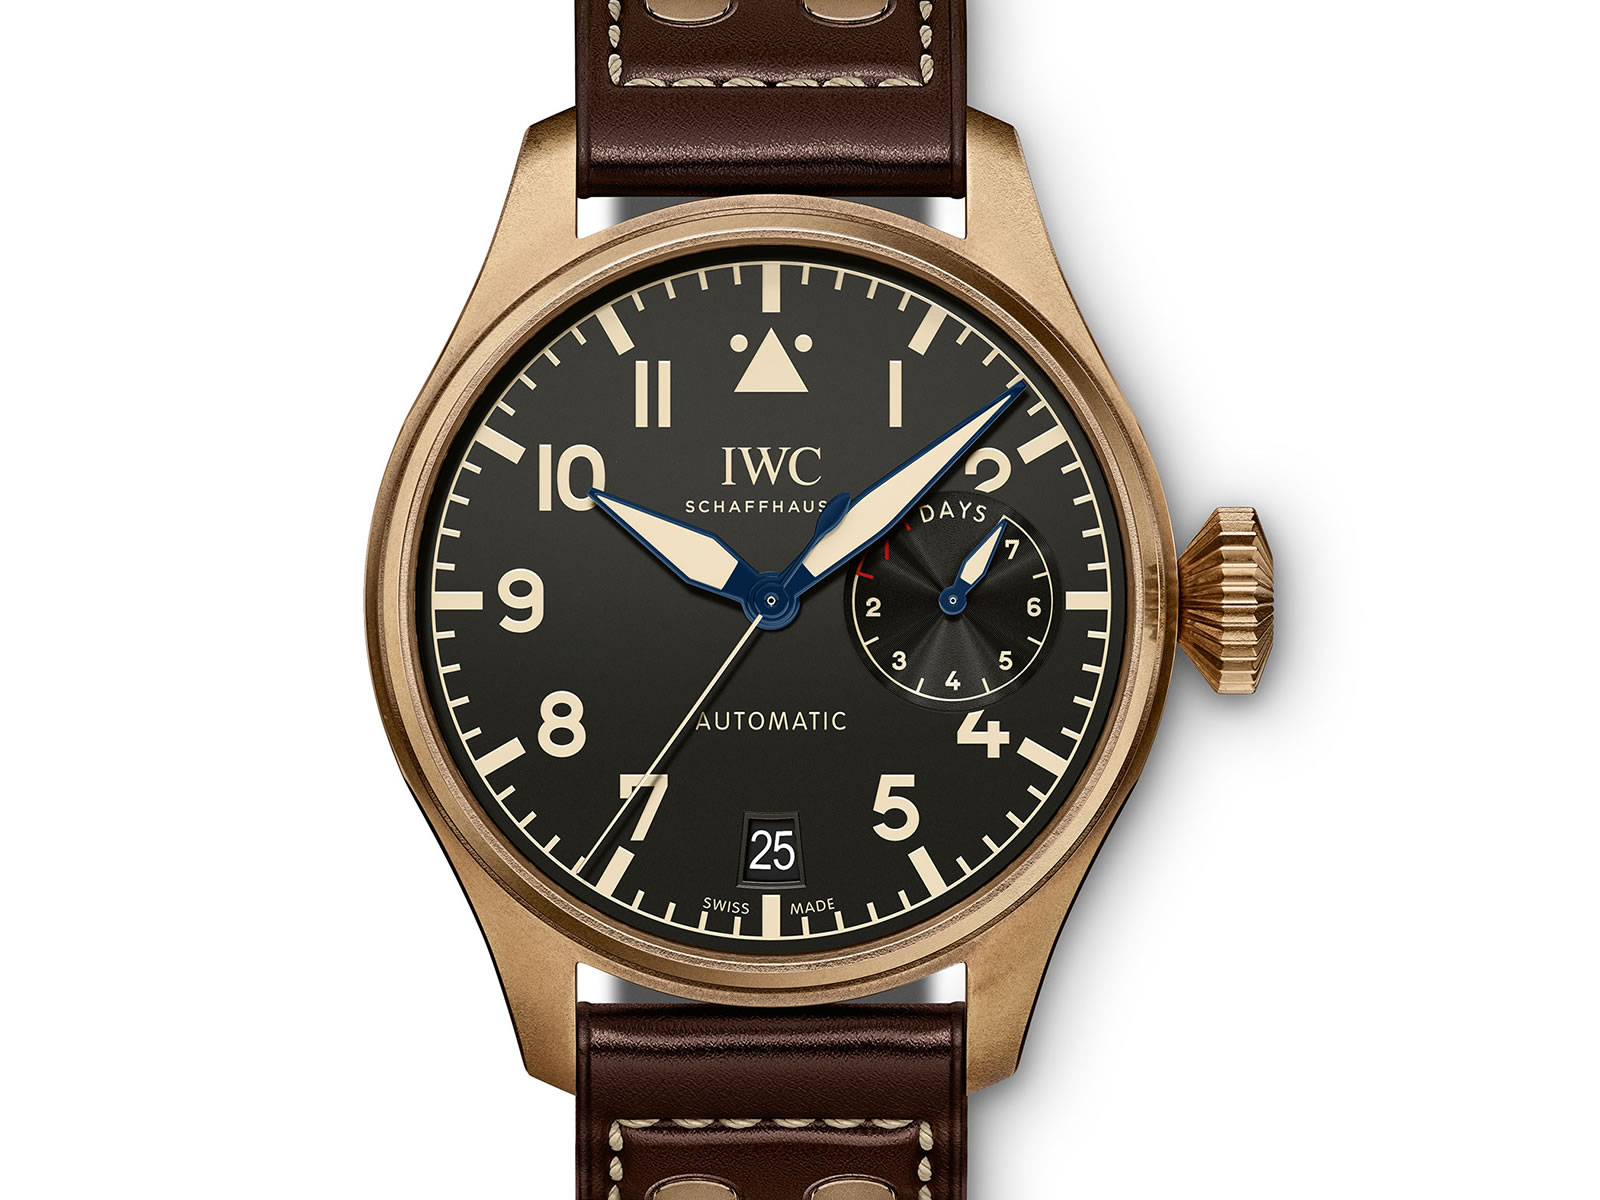 iw501005-iwc-big-pilots-watch-heritage-bronze-2-.jpg